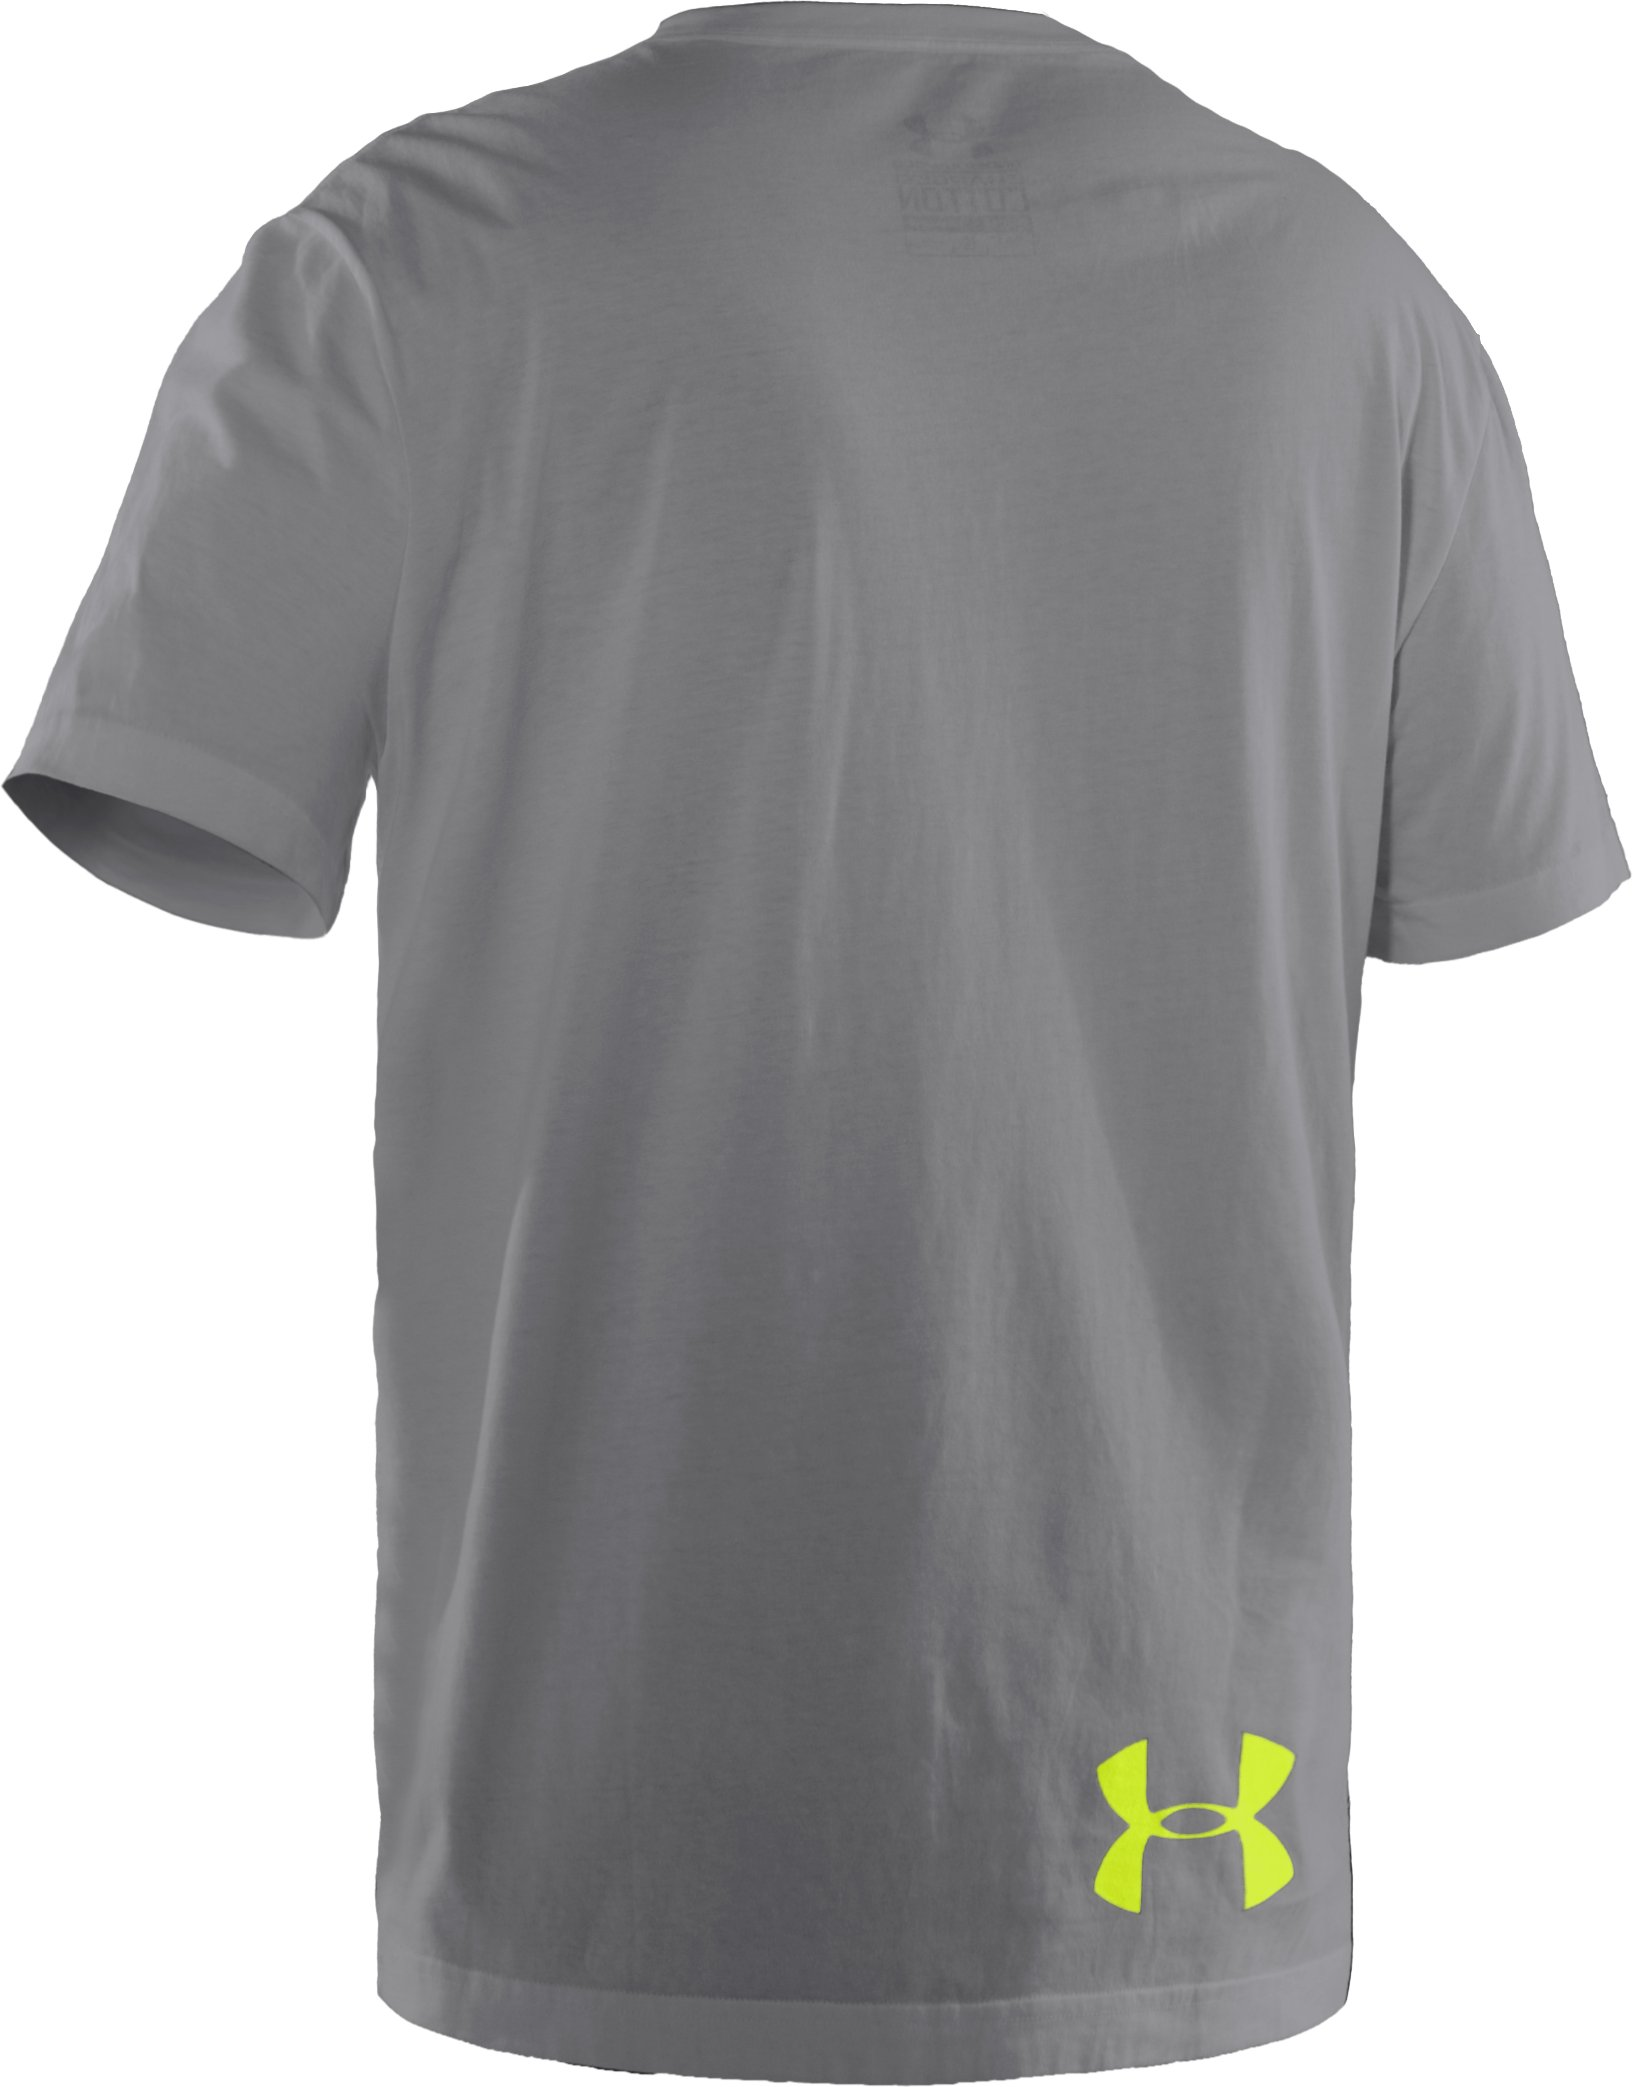 Men's Uplifted Charged Cotton® T-Shirt, Graphite, undefined